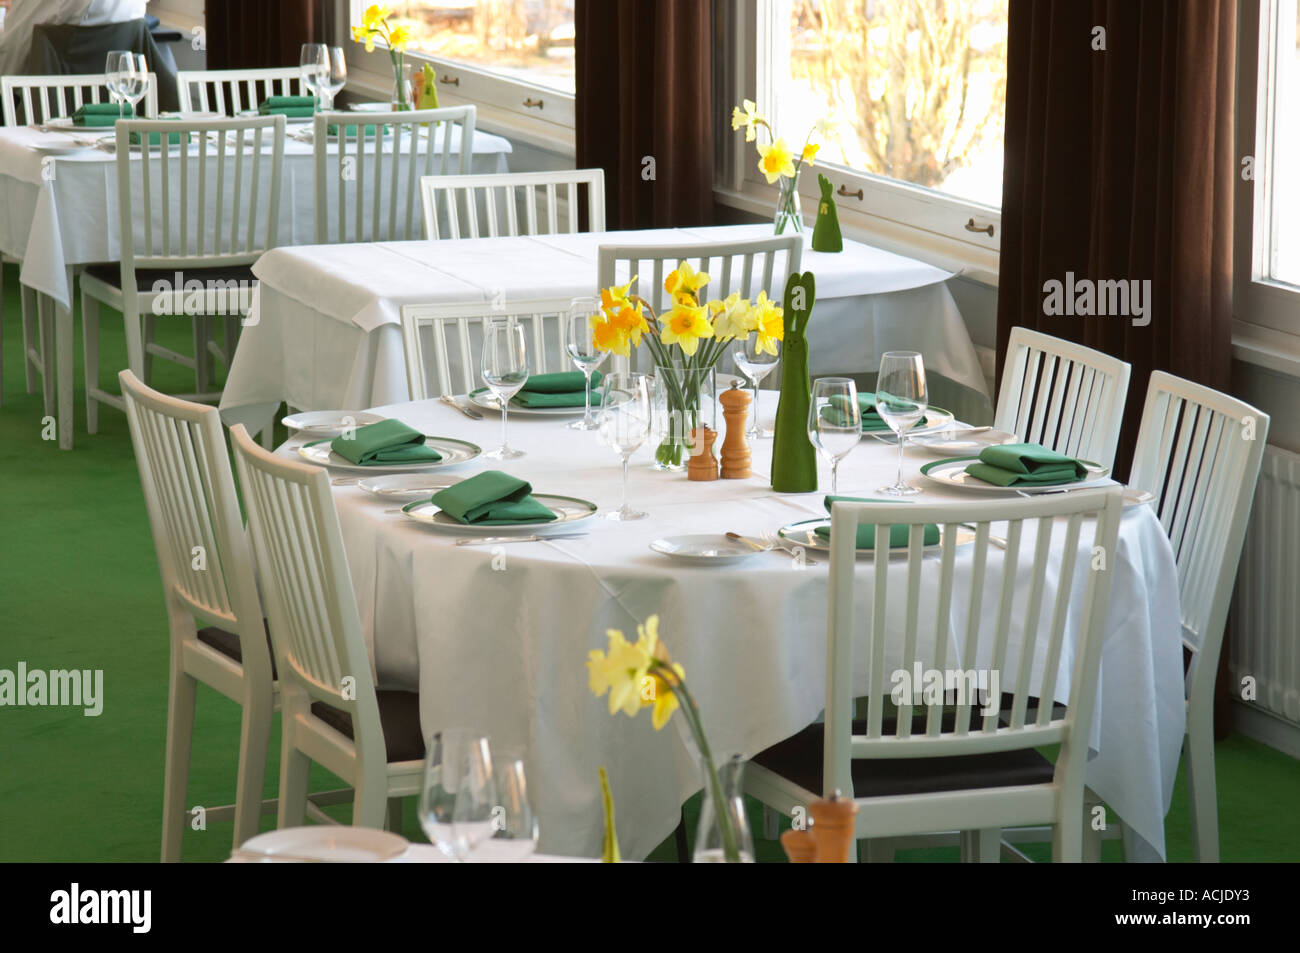 A Restaurant Table With A White Linen Table Cloth Set For Six Persons, With  Plates